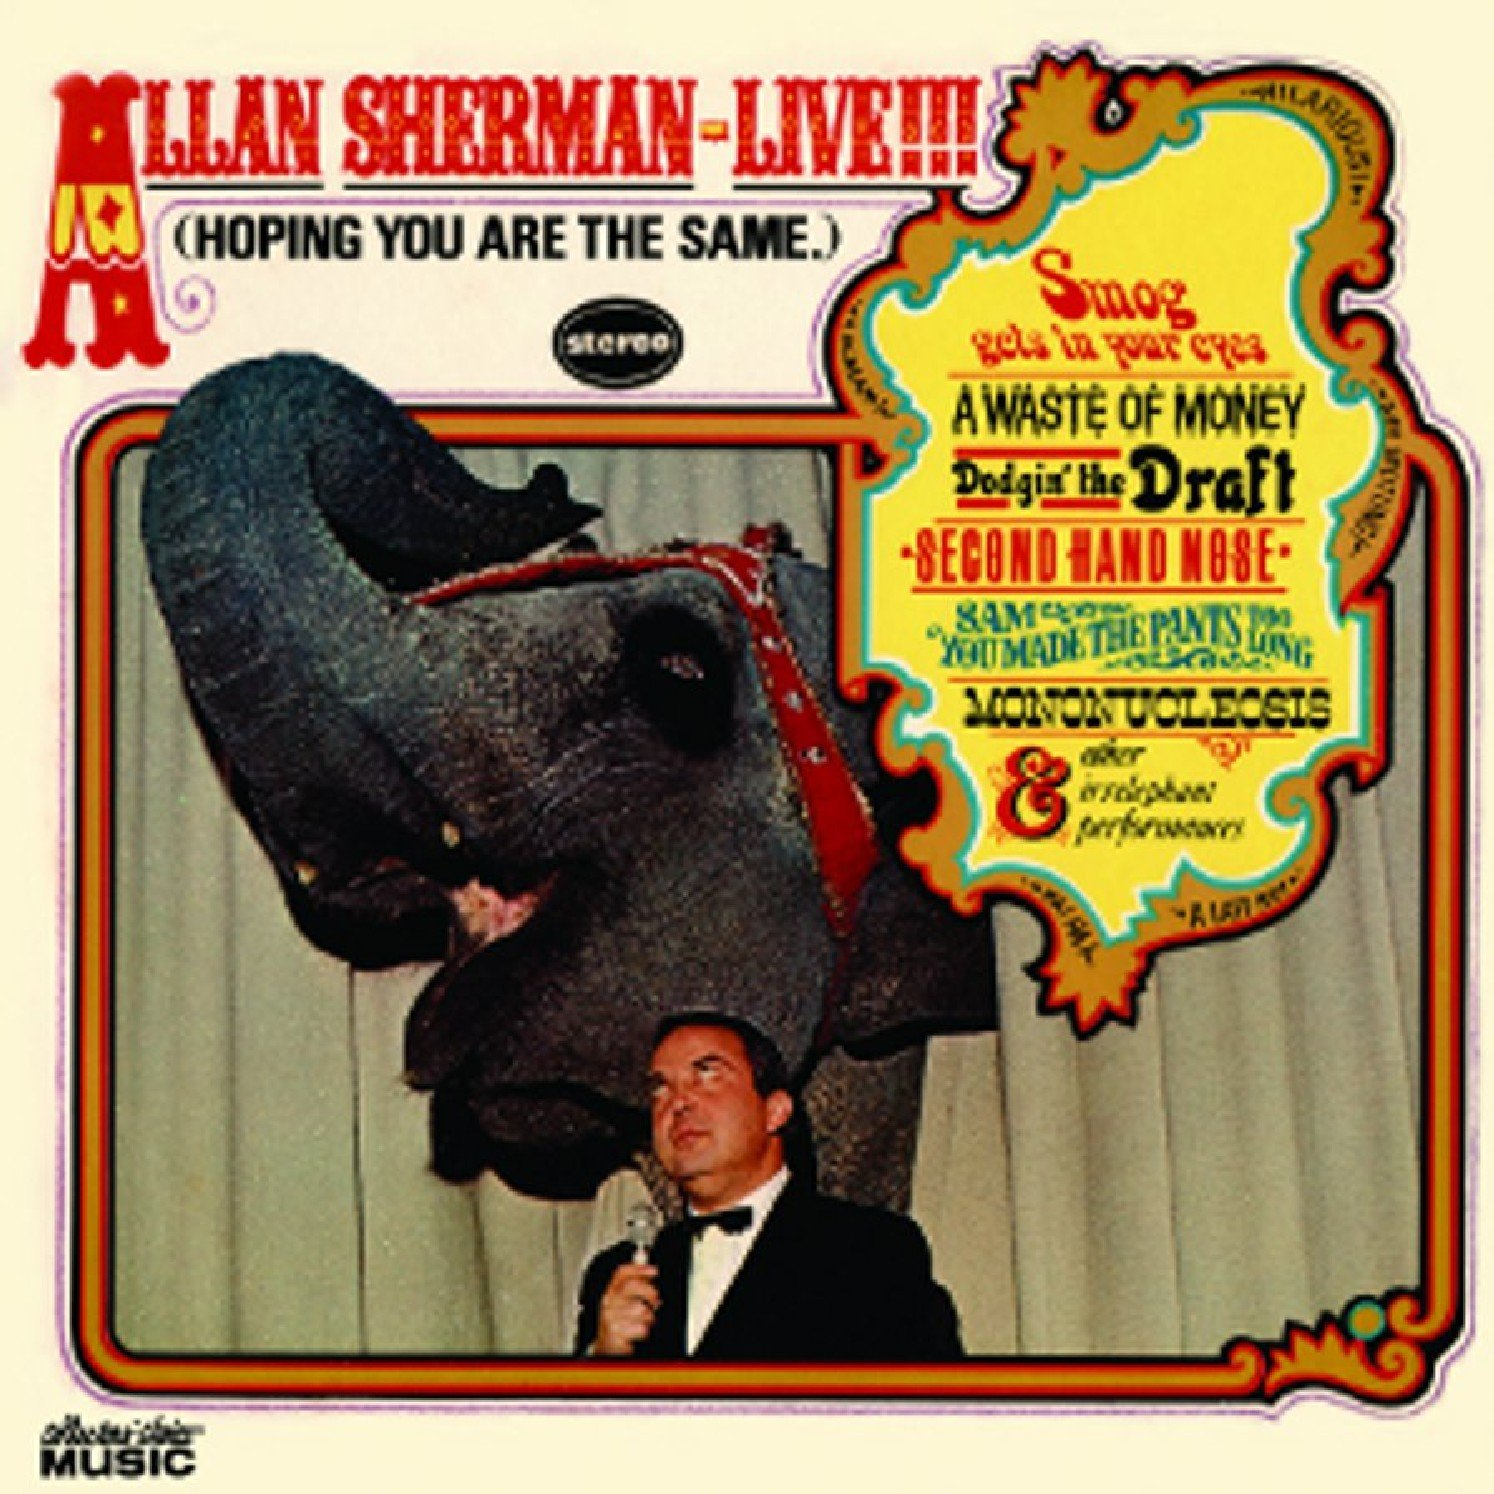 Allan Sherman Live (Hoping You Are the Same)